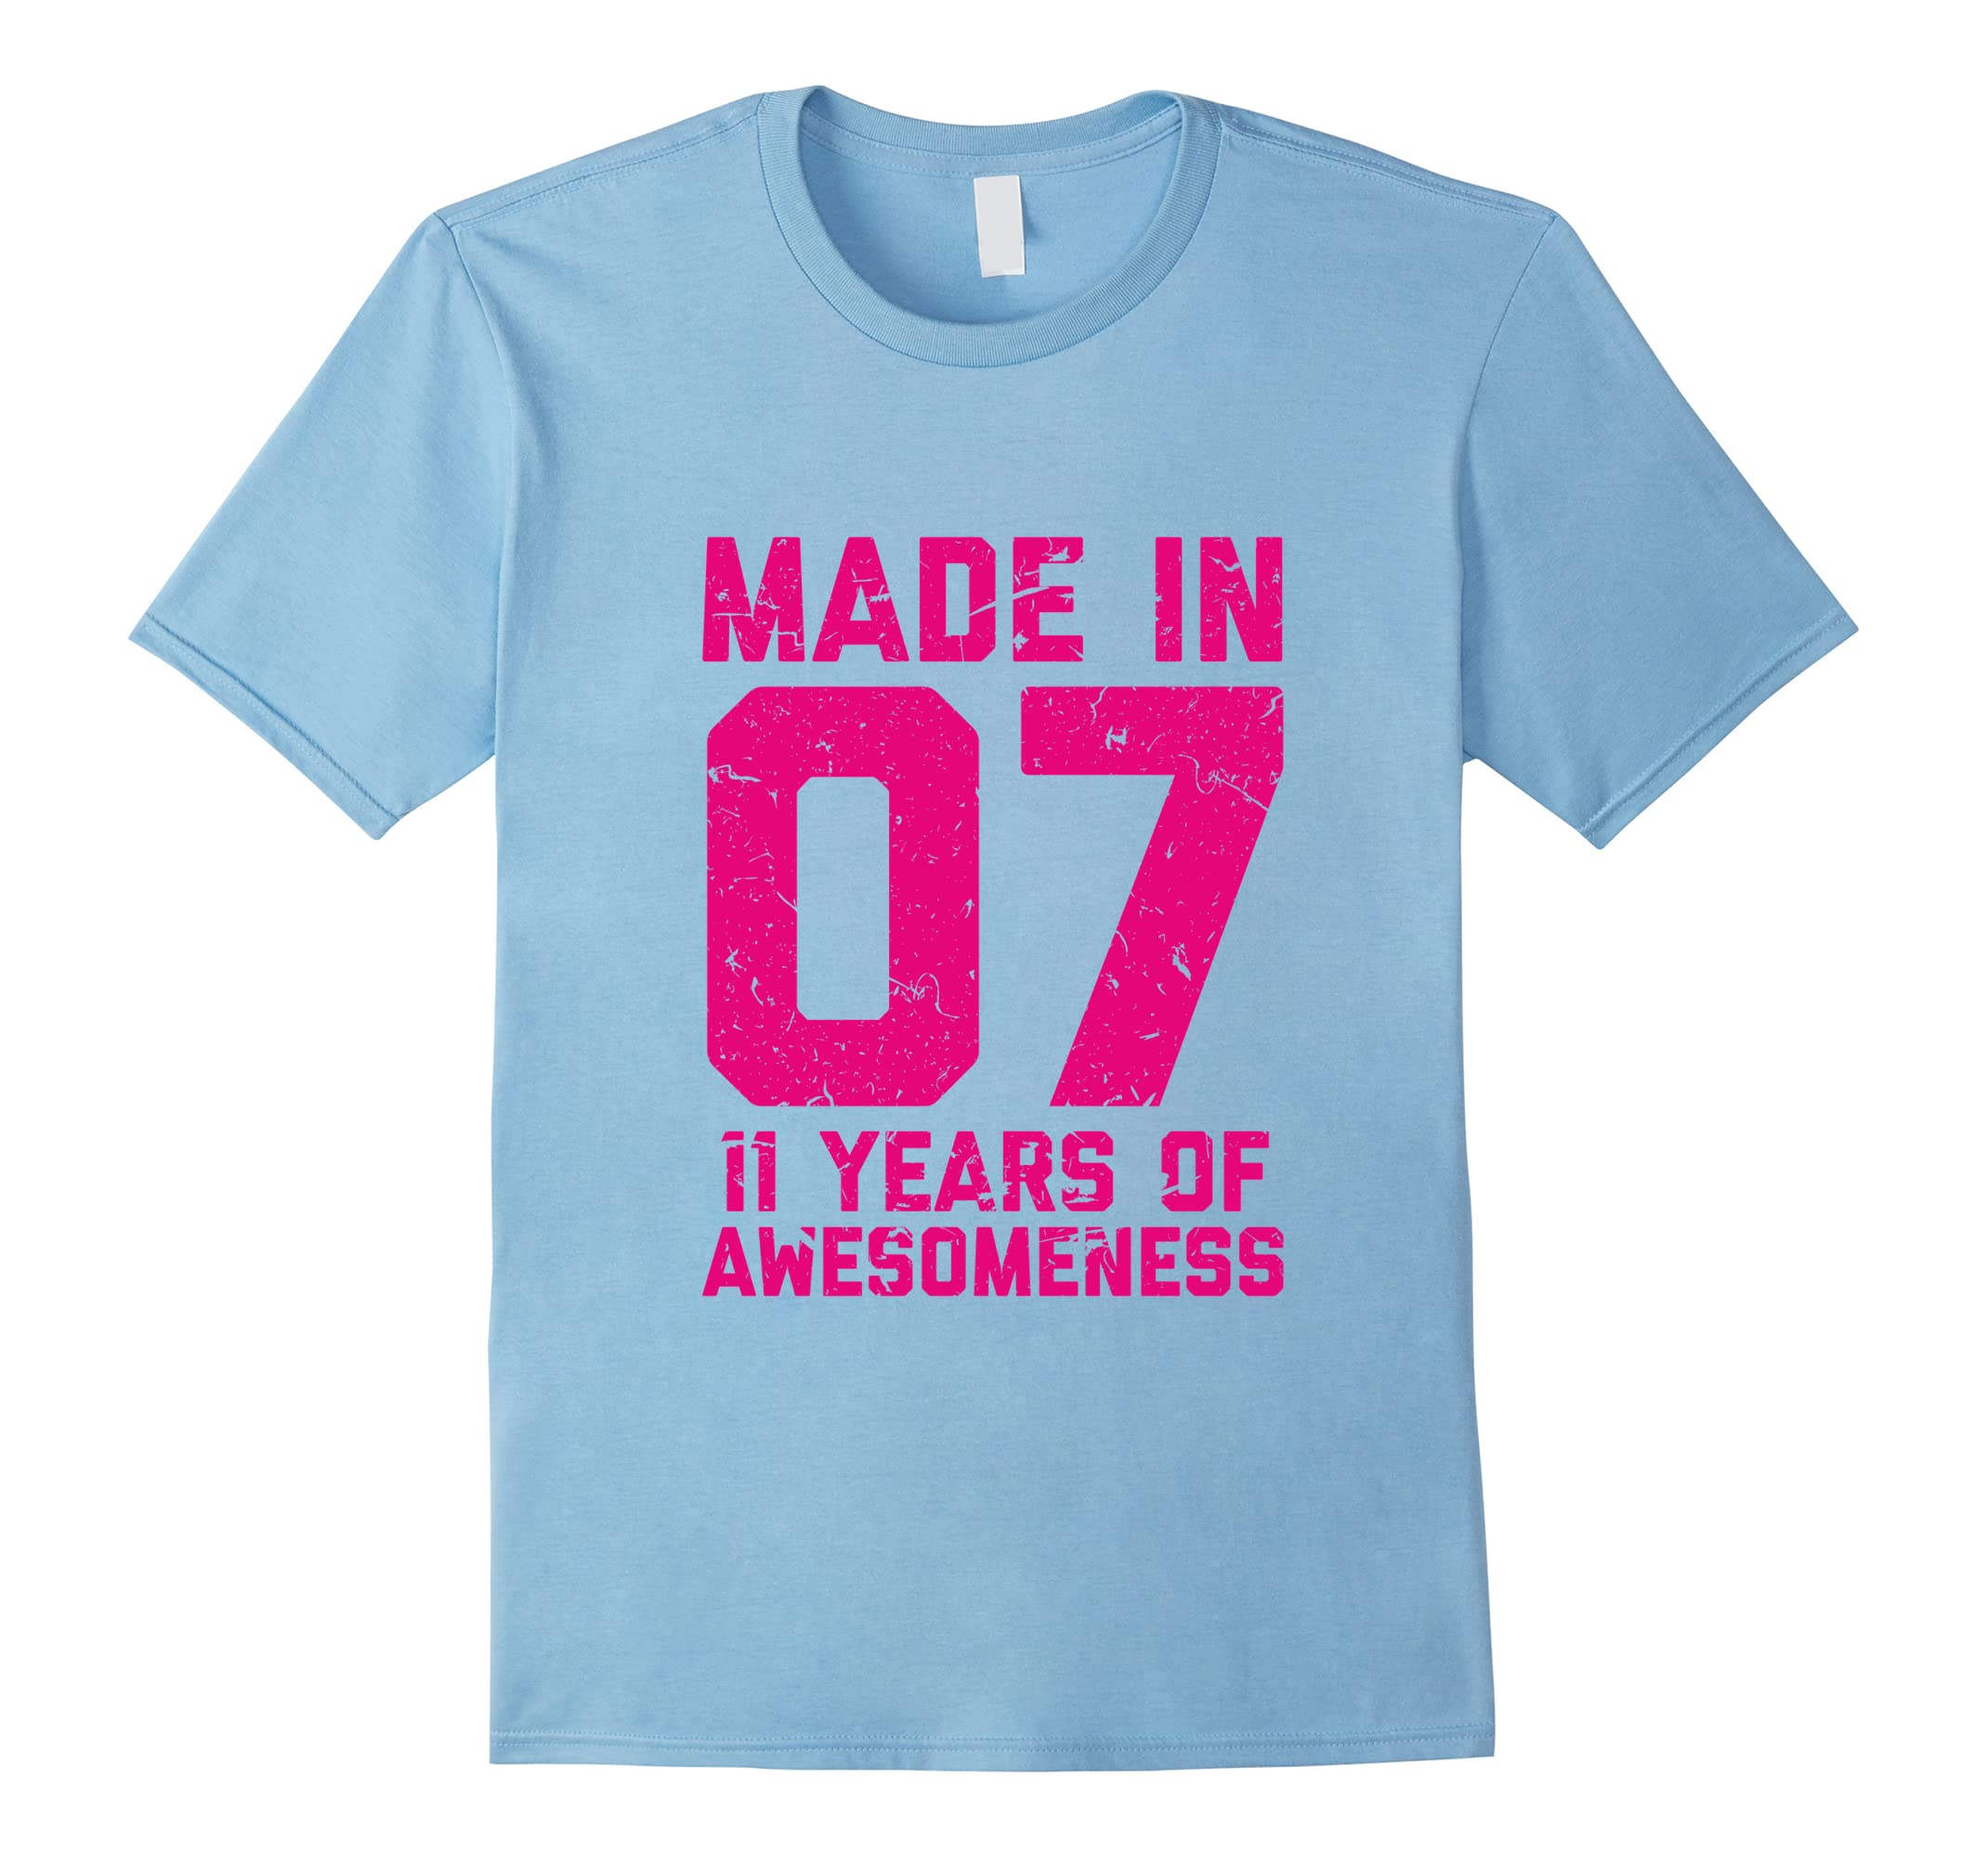 11th Birthday Shirt Gift Girls Age 11 Eleven Year Old Girl T-ah my shirt one gift